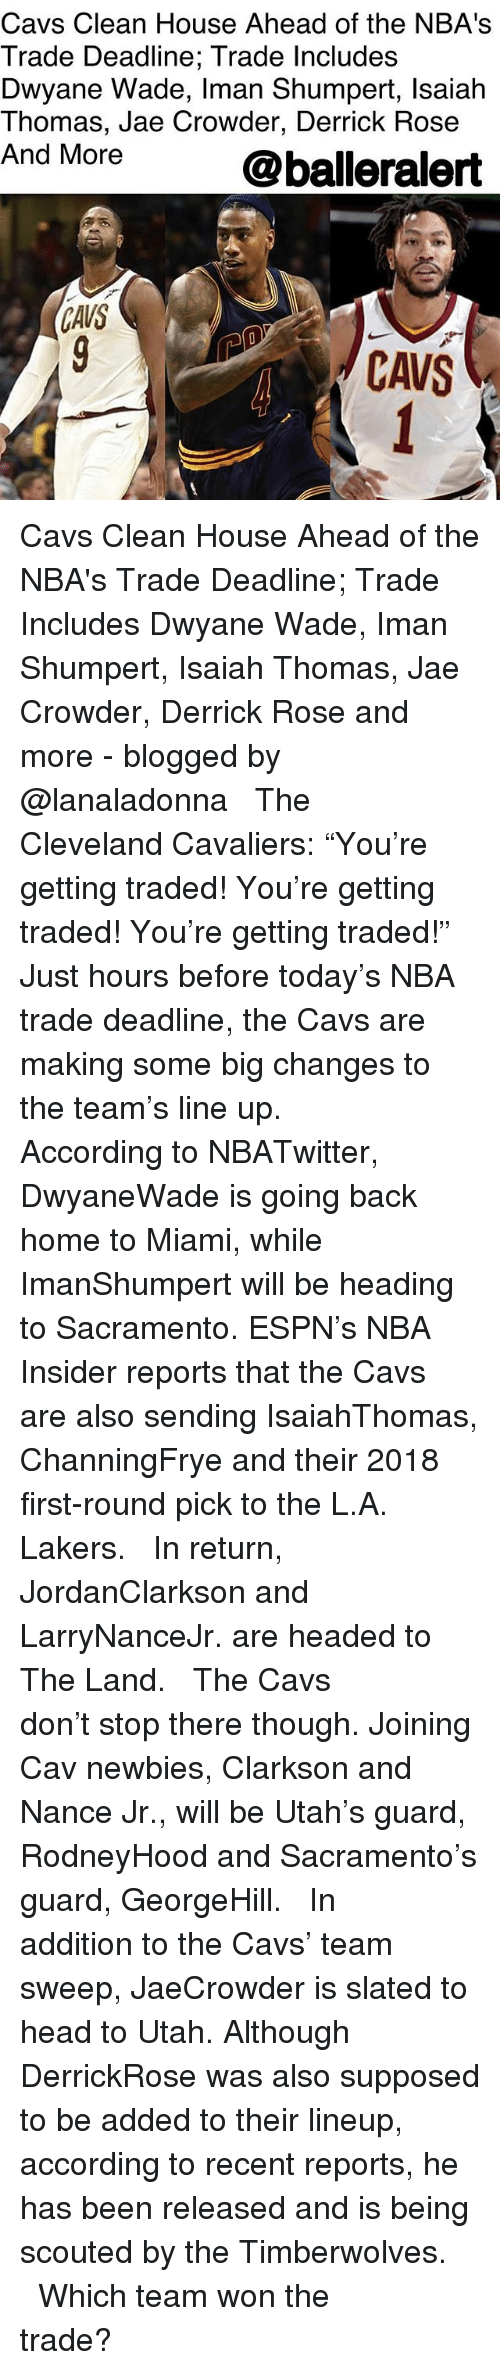 """Cavs, Cleveland Cavaliers, and Derrick Rose: Cavs Clean House Ahead of the NBA's  Trade Deadline; Trade lncludes  Dwyane Wade, Iman Shumpert, lsaiah  Thomas, Jae Crowder, Derrick Rose  And More  @balleralert  CAVS Cavs Clean House Ahead of the NBA's Trade Deadline; Trade Includes Dwyane Wade, Iman Shumpert, Isaiah Thomas, Jae Crowder, Derrick Rose and more - blogged by @lanaladonna ⠀⠀⠀⠀⠀⠀⠀ ⠀⠀⠀⠀⠀⠀⠀ The Cleveland Cavaliers: """"You're getting traded! You're getting traded! You're getting traded!"""" Just hours before today's NBA trade deadline, the Cavs are making some big changes to the team's line up. ⠀⠀⠀⠀⠀⠀⠀ ⠀⠀⠀⠀⠀⠀⠀ According to NBATwitter, DwyaneWade is going back home to Miami, while ImanShumpert will be heading to Sacramento. ESPN's NBA Insider reports that the Cavs are also sending IsaiahThomas, ChanningFrye and their 2018 first-round pick to the L.A. Lakers. ⠀⠀⠀⠀⠀⠀⠀ ⠀⠀⠀⠀⠀⠀⠀ In return, JordanClarkson and LarryNanceJr. are headed to The Land. ⠀⠀⠀⠀⠀⠀⠀ ⠀⠀⠀⠀⠀⠀⠀ The Cavs don't stop there though. Joining Cav newbies, Clarkson and Nance Jr., will be Utah's guard, RodneyHood and Sacramento's guard, GeorgeHill. ⠀⠀⠀⠀⠀⠀⠀ ⠀⠀⠀⠀⠀⠀⠀ In addition to the Cavs' team sweep, JaeCrowder is slated to head to Utah. Although DerrickRose was also supposed to be added to their lineup, according to recent reports, he has been released and is being scouted by the Timberwolves. ⠀⠀⠀⠀⠀⠀⠀ ⠀⠀⠀⠀⠀⠀⠀ Which team won the trade?"""